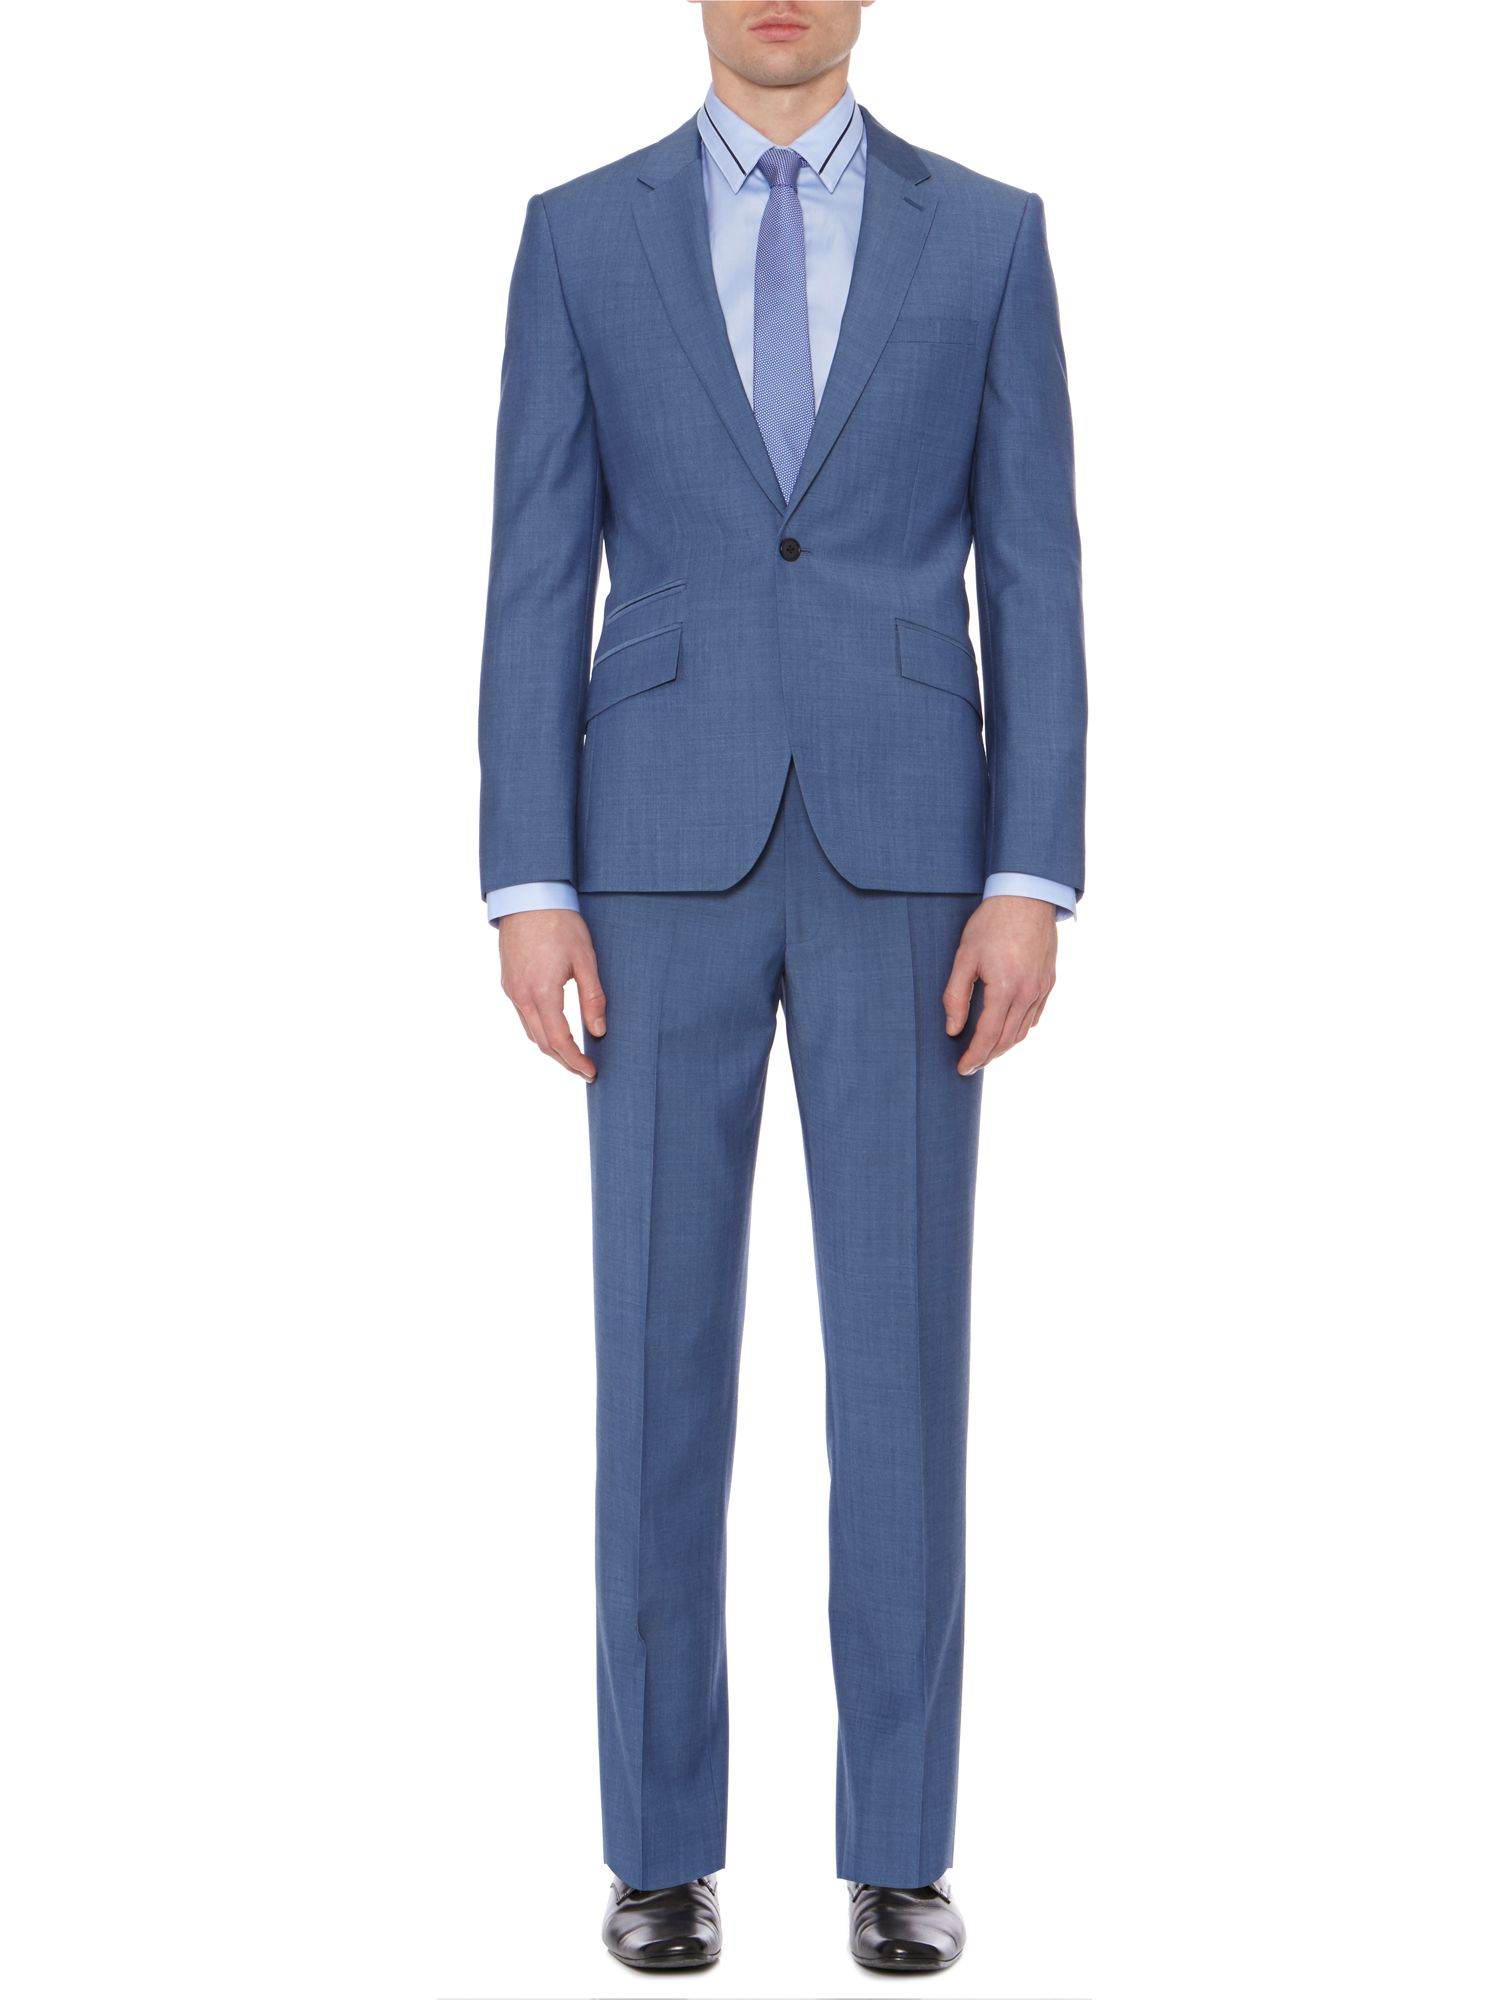 Blandon slim fit suit